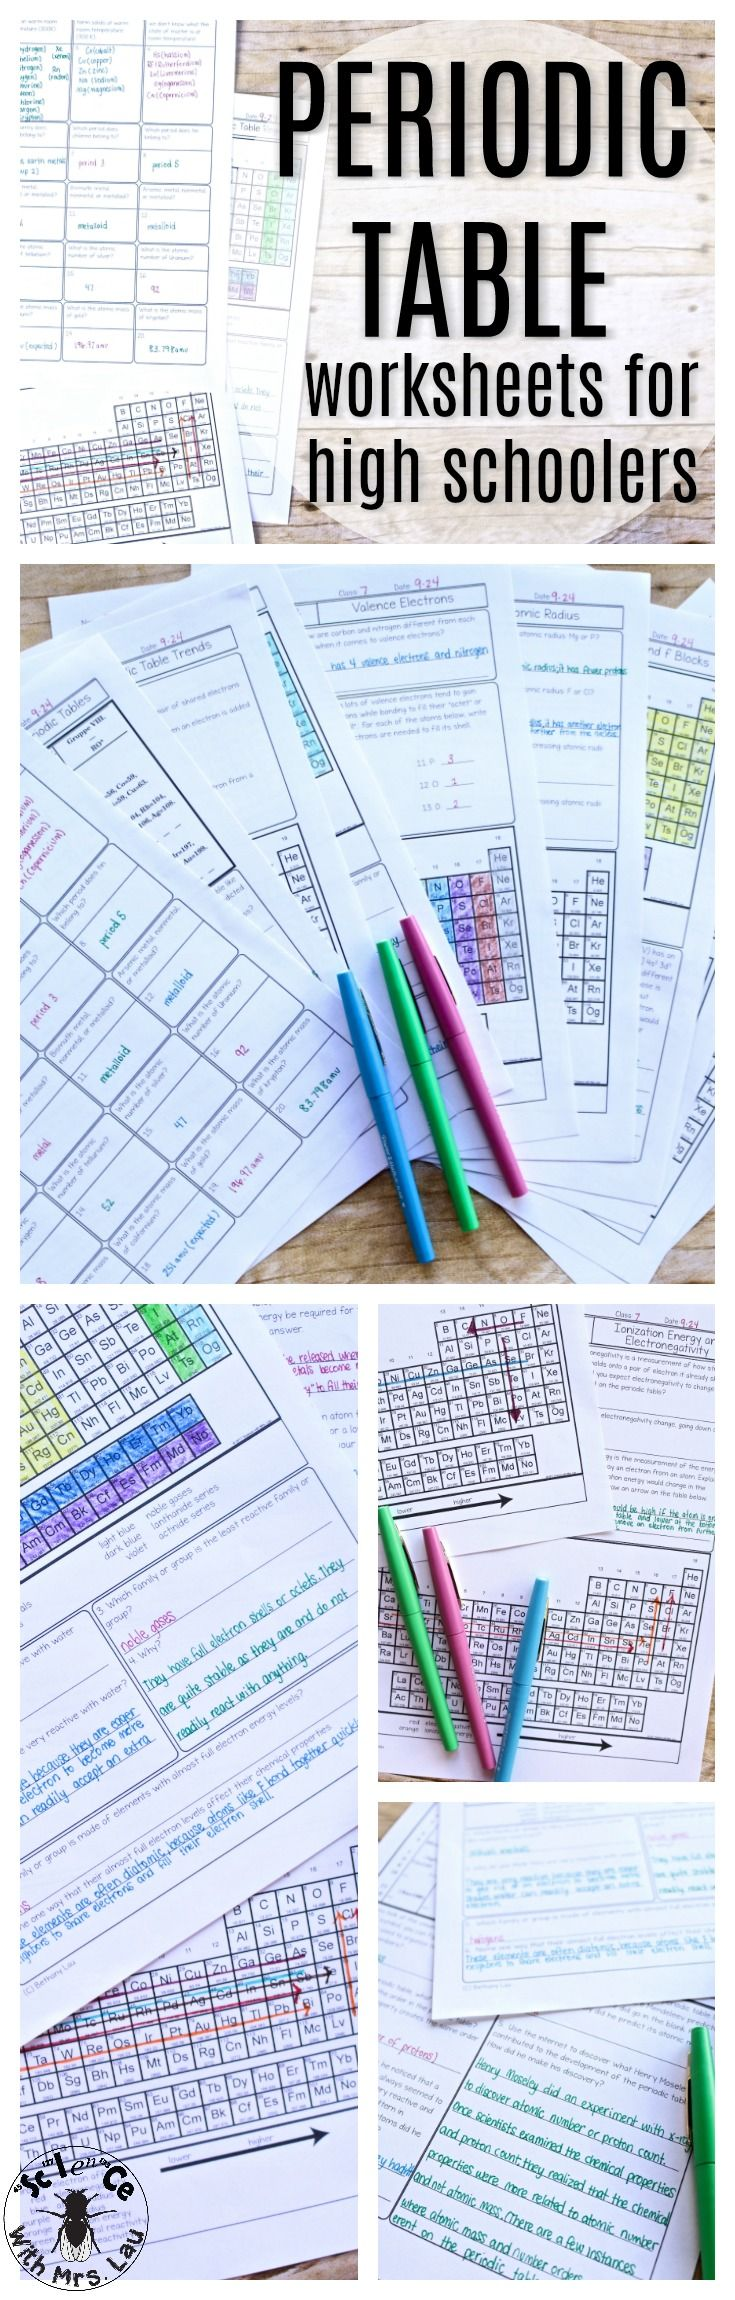 These set of homework pages or worksheets are perfect for helping your students really understand periodic table trends!  Each page instructs students to color in a trend like electronegativity, electron affinity, ionization energy, and atomic radius.  The questions are designed to really help students understand the WHY behind each trend.